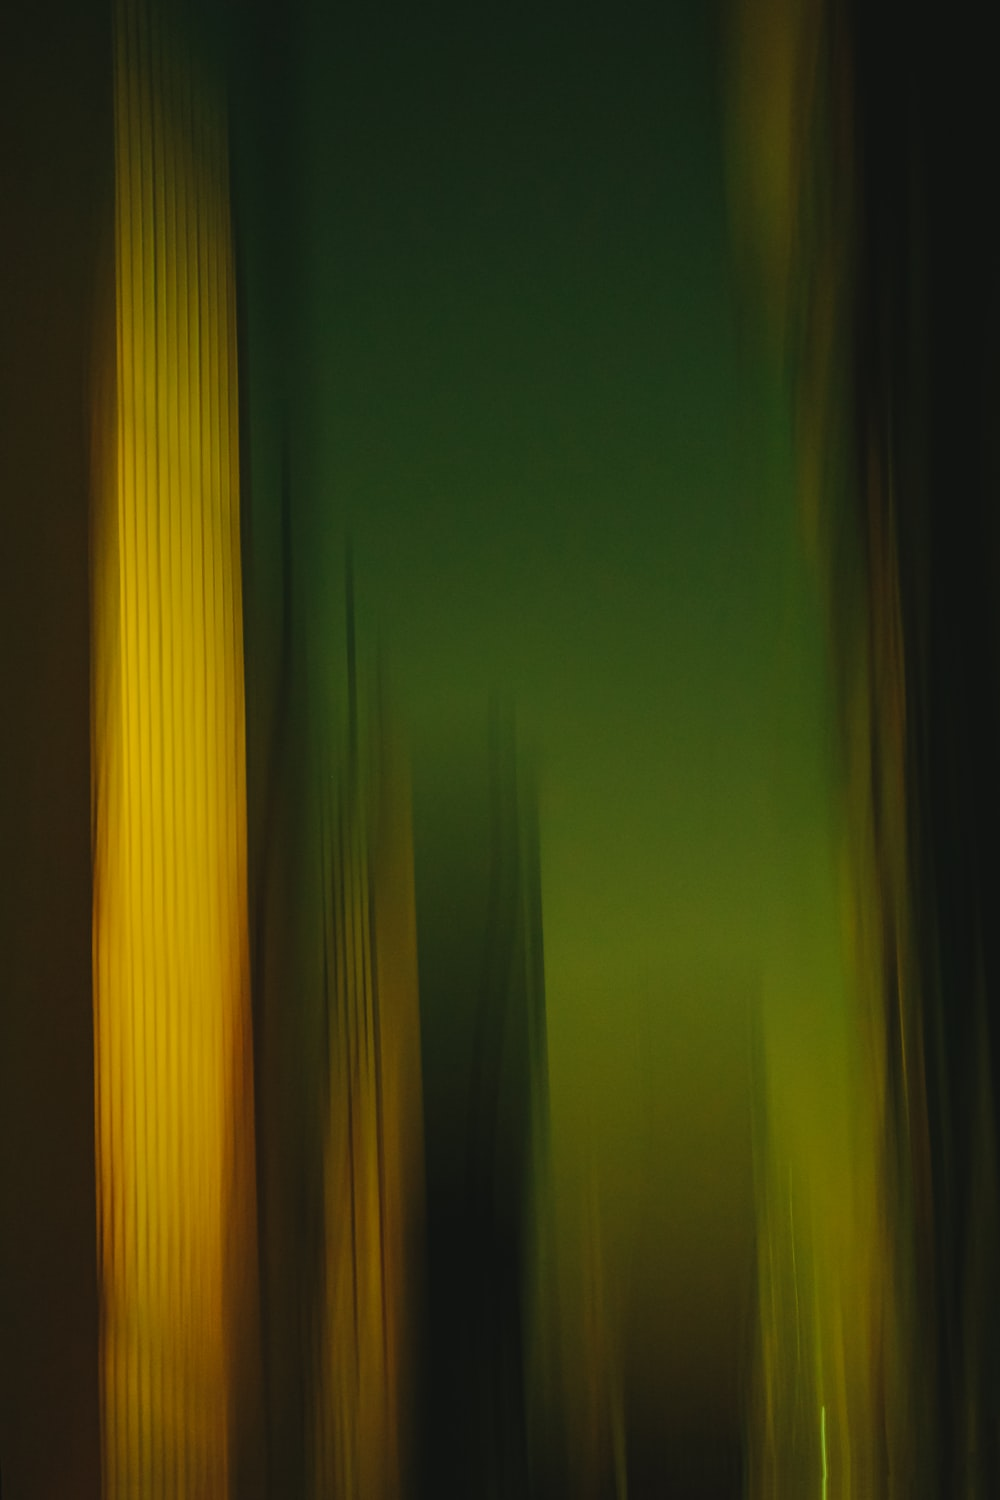 green and yellow light in green